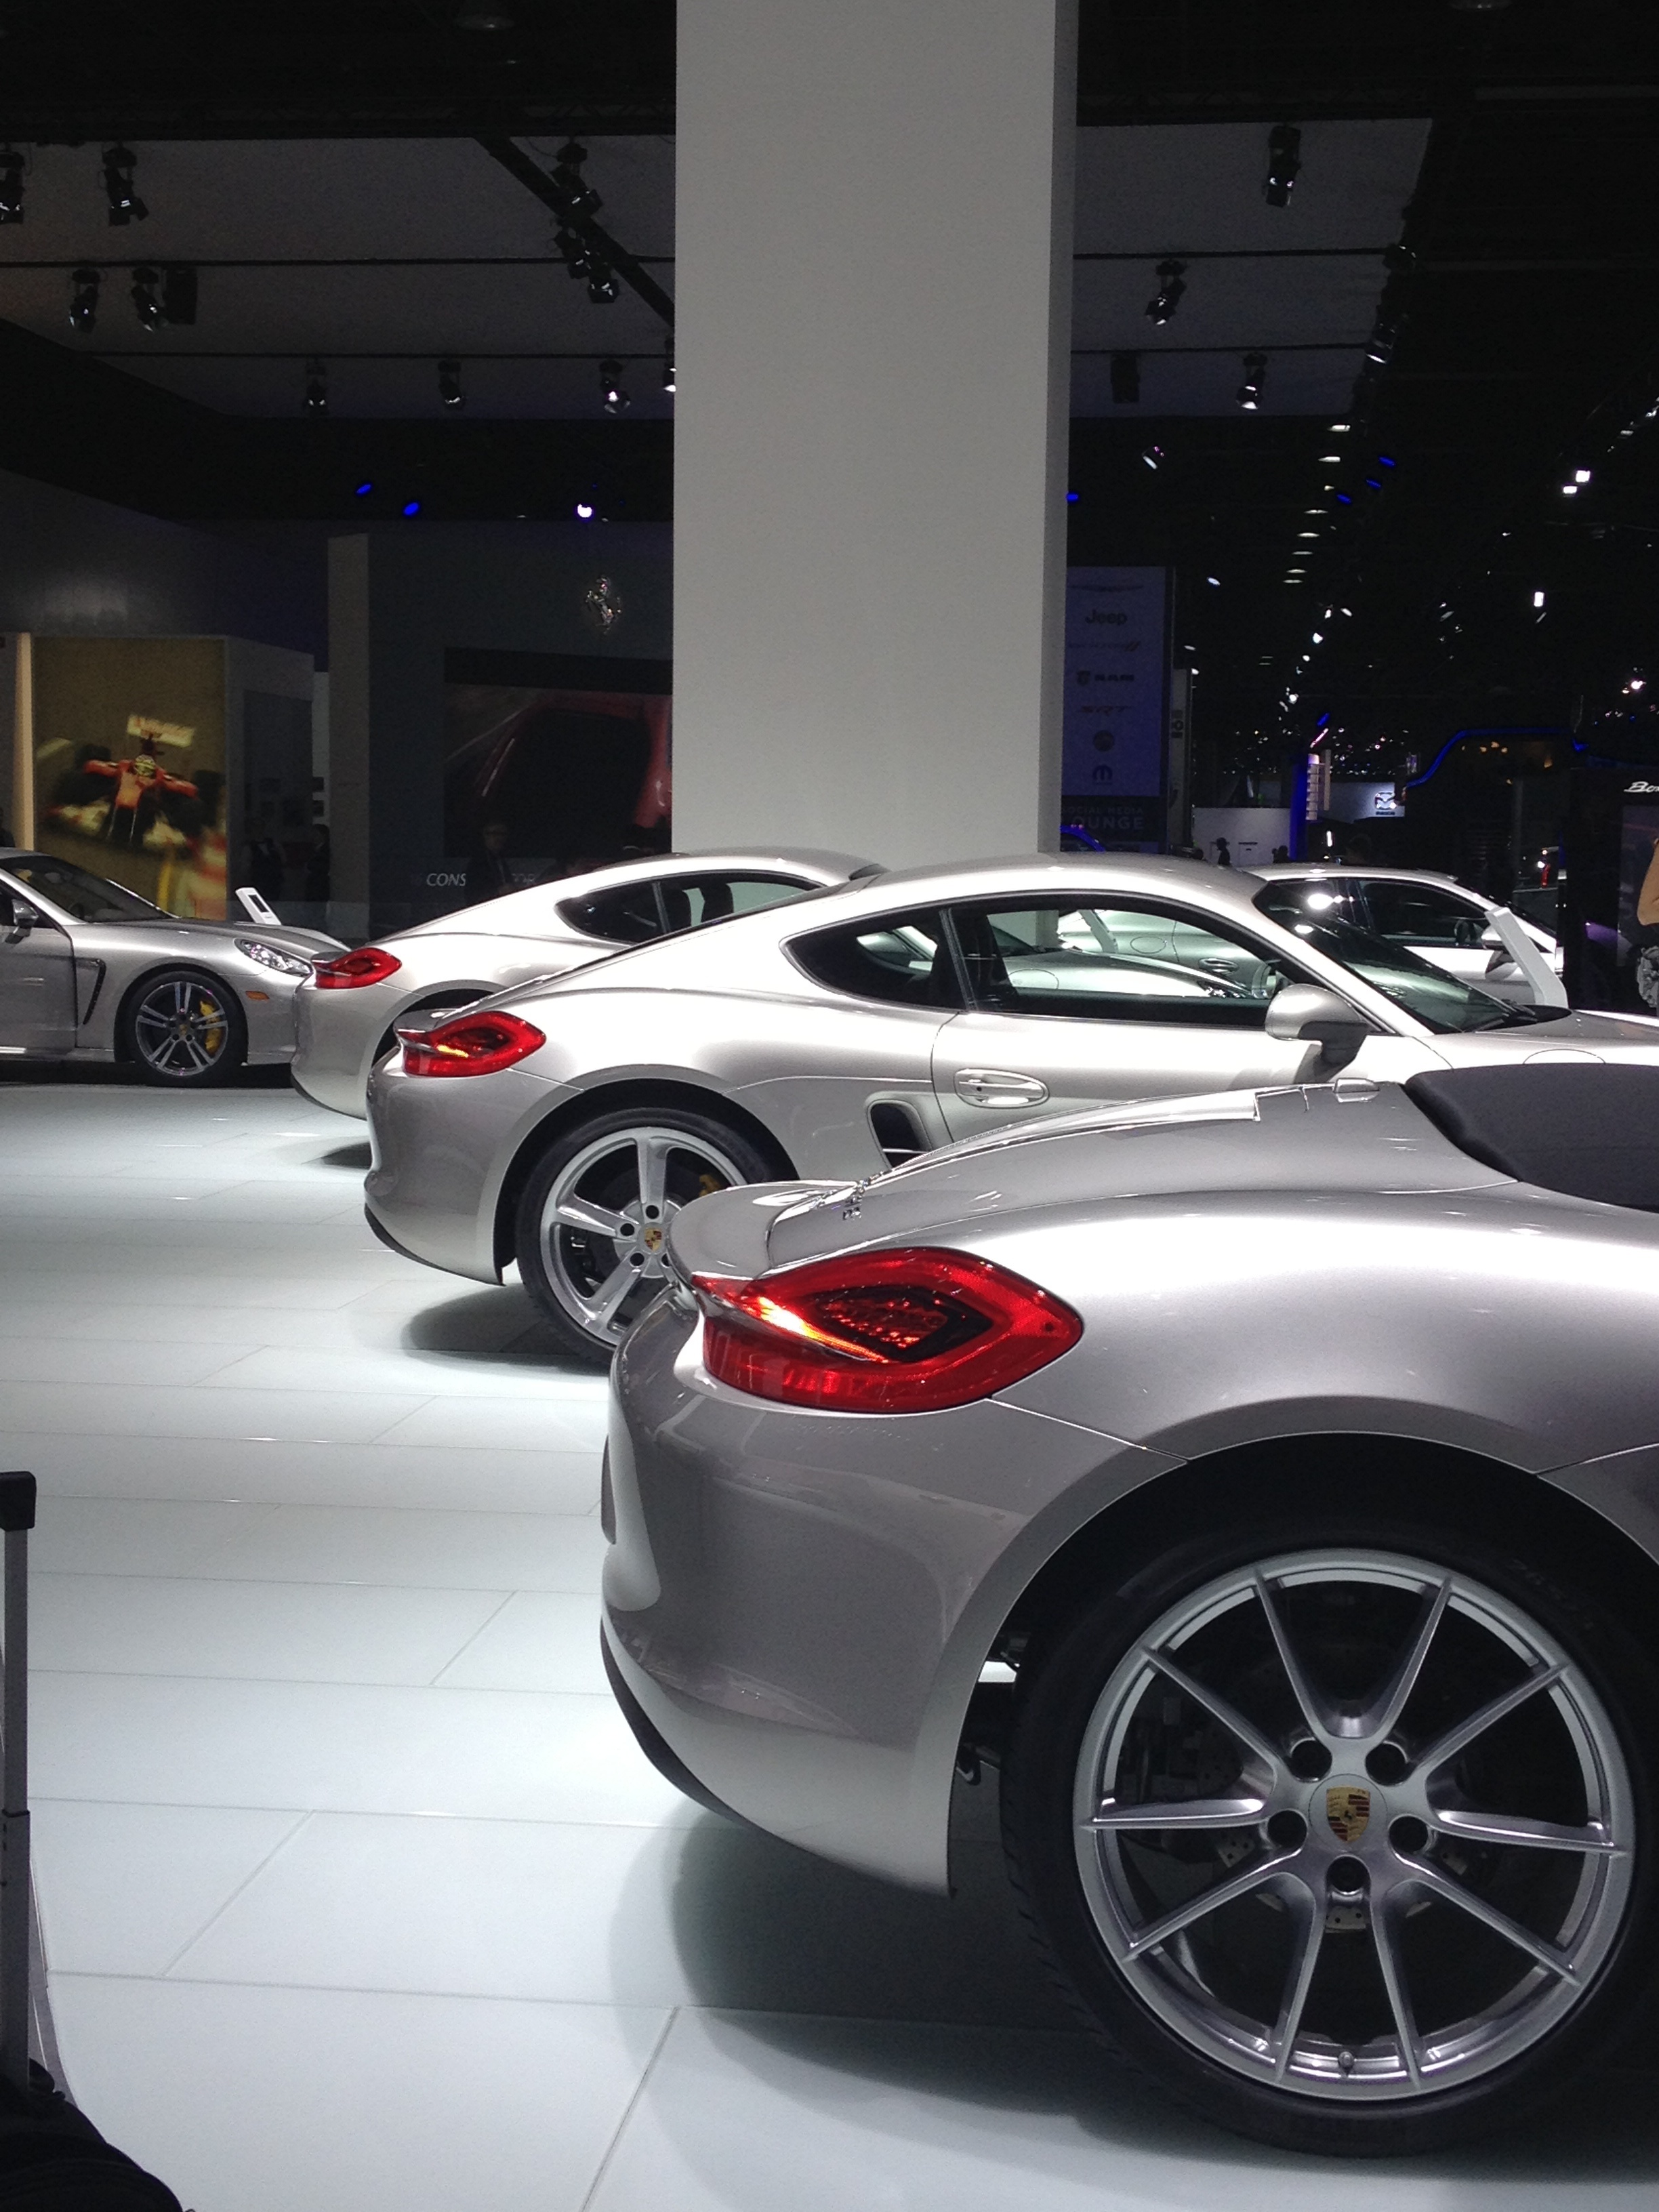 2013-porsche-panamera-turbo-s-cayman-cayman-s-boxster-at-naias-2013-by-sarahlarson